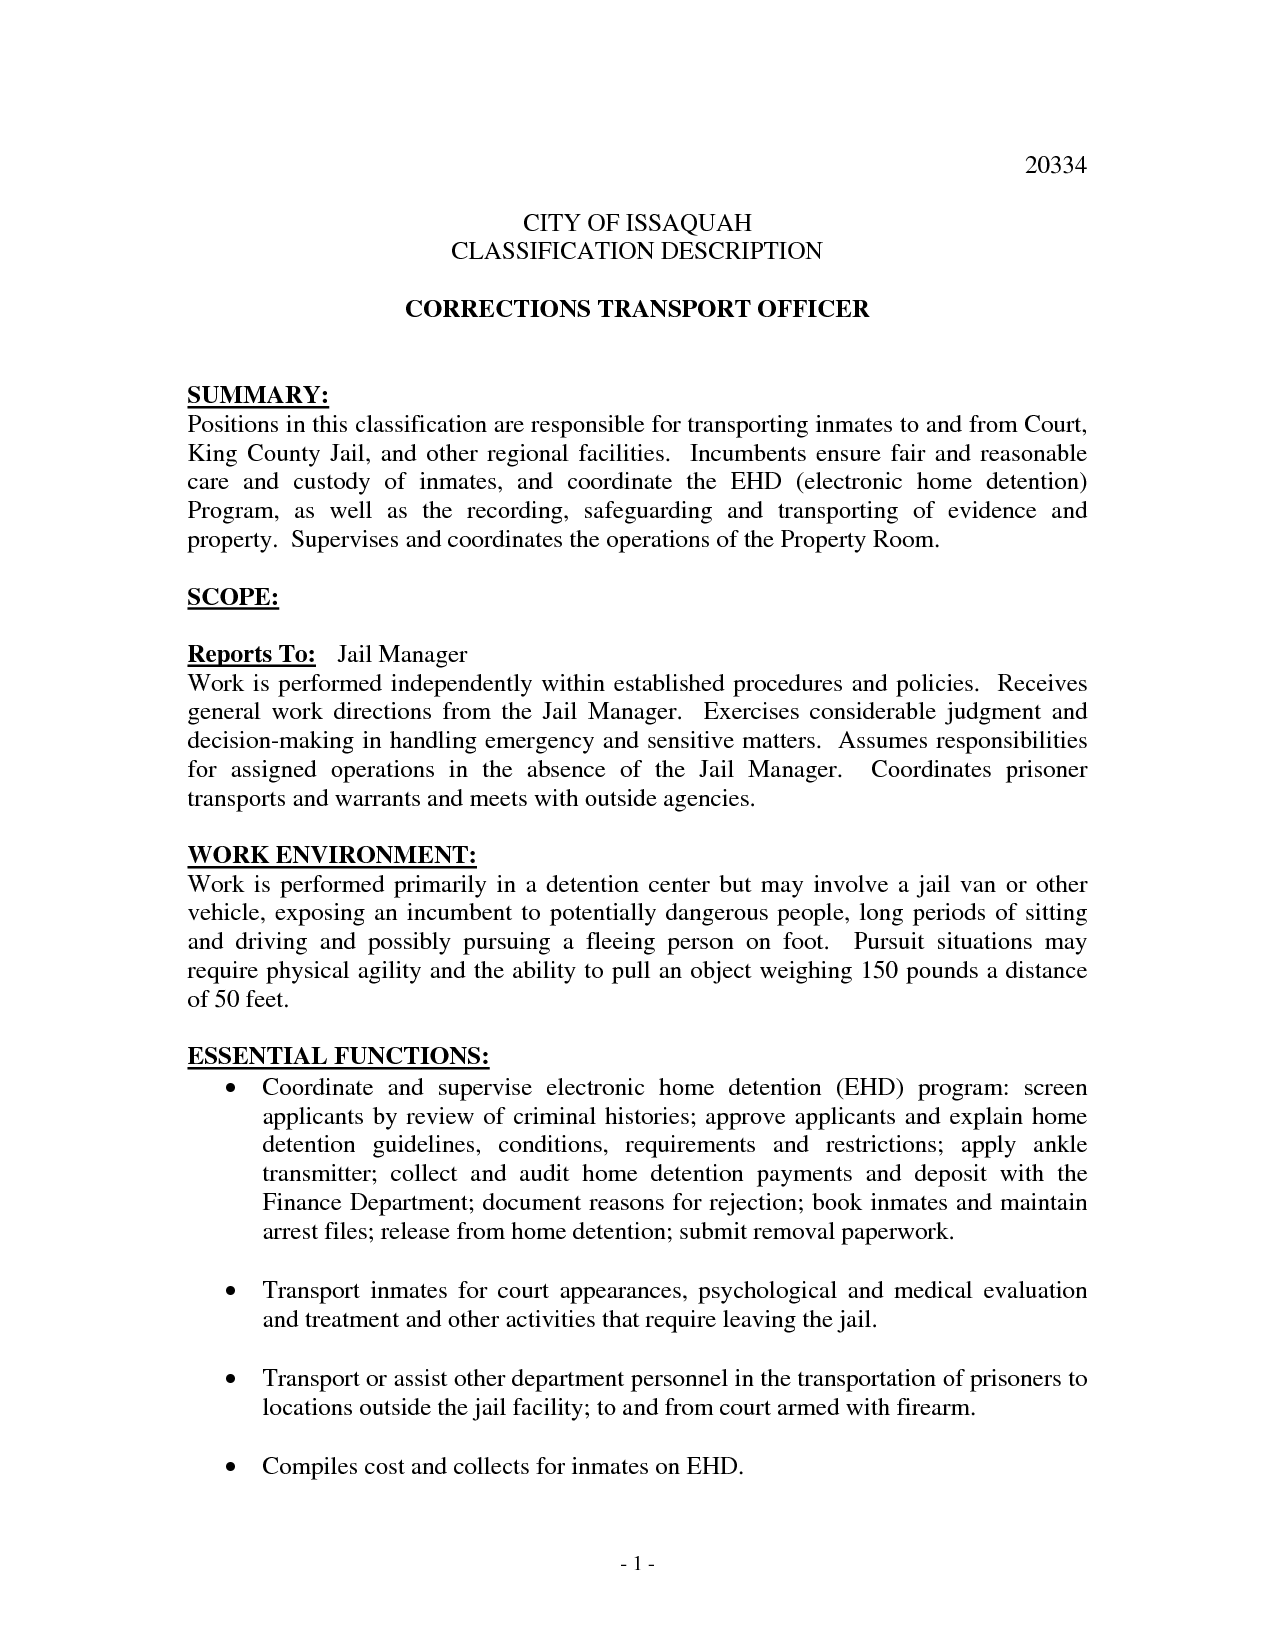 Correctional Officer Resume No Experience  HttpWwwJobresume